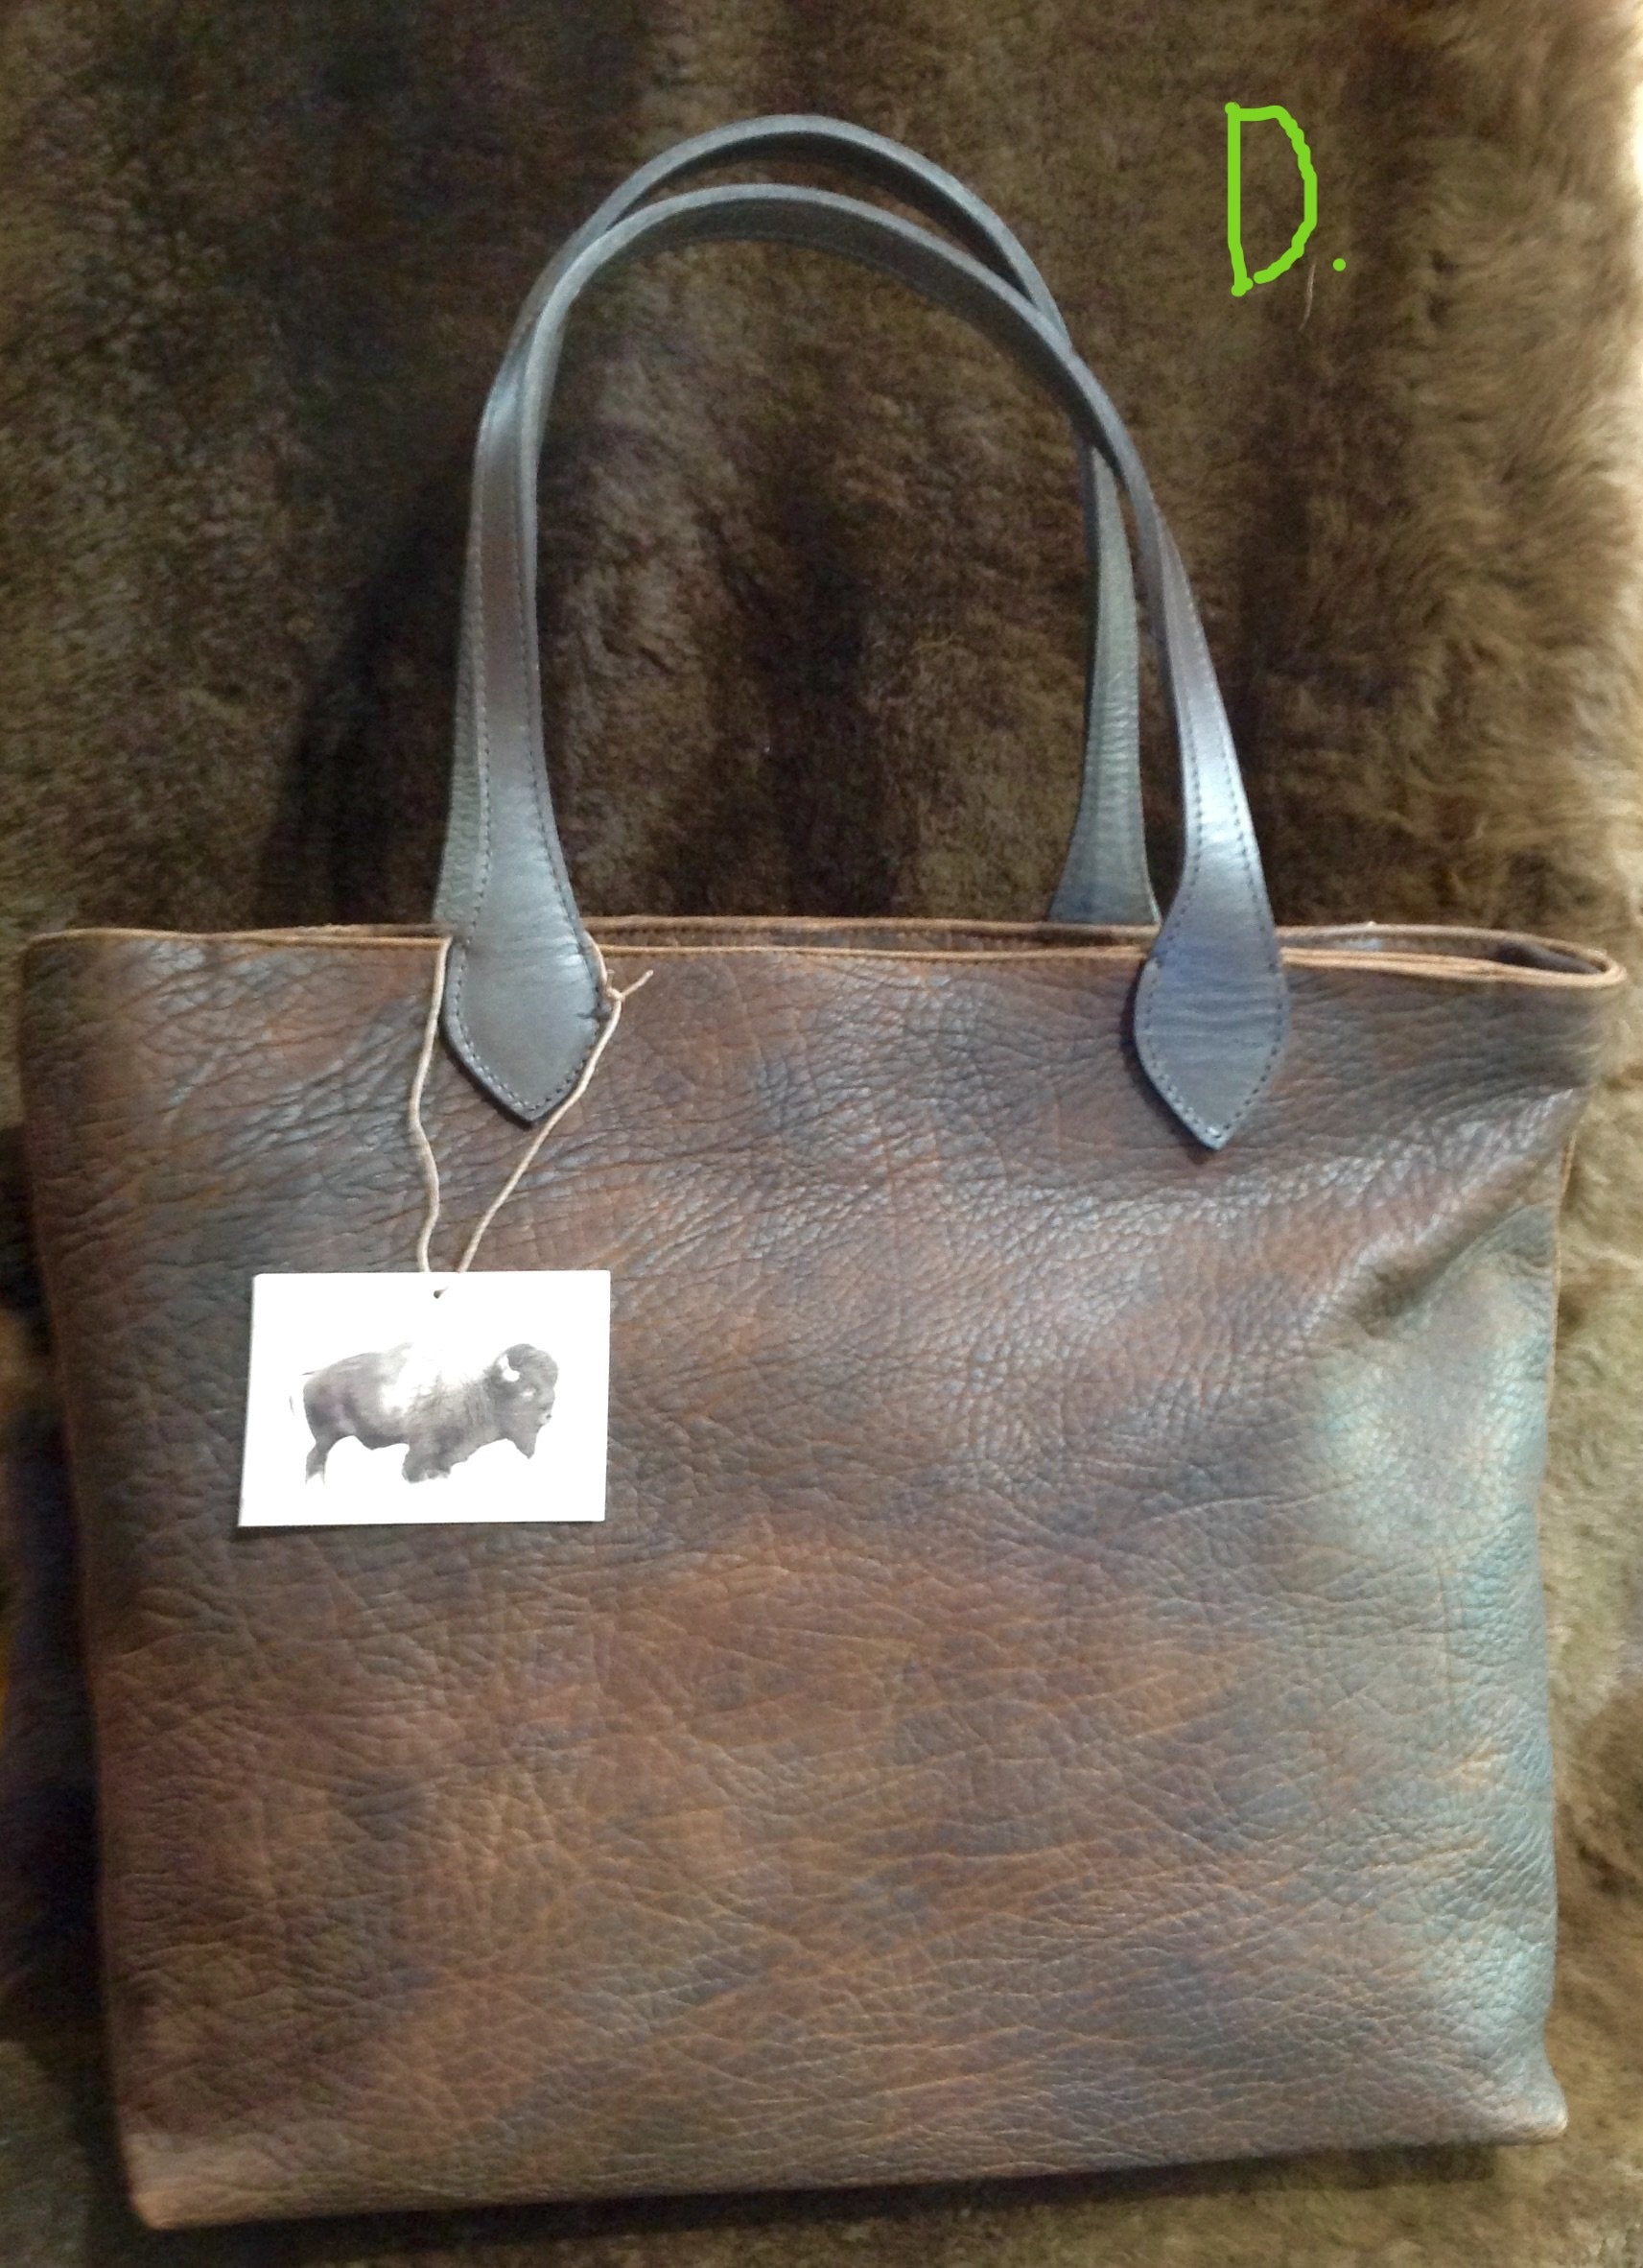 Loma Vista American Bison Leather Large Cibolo Tote Bag / Purse #3000